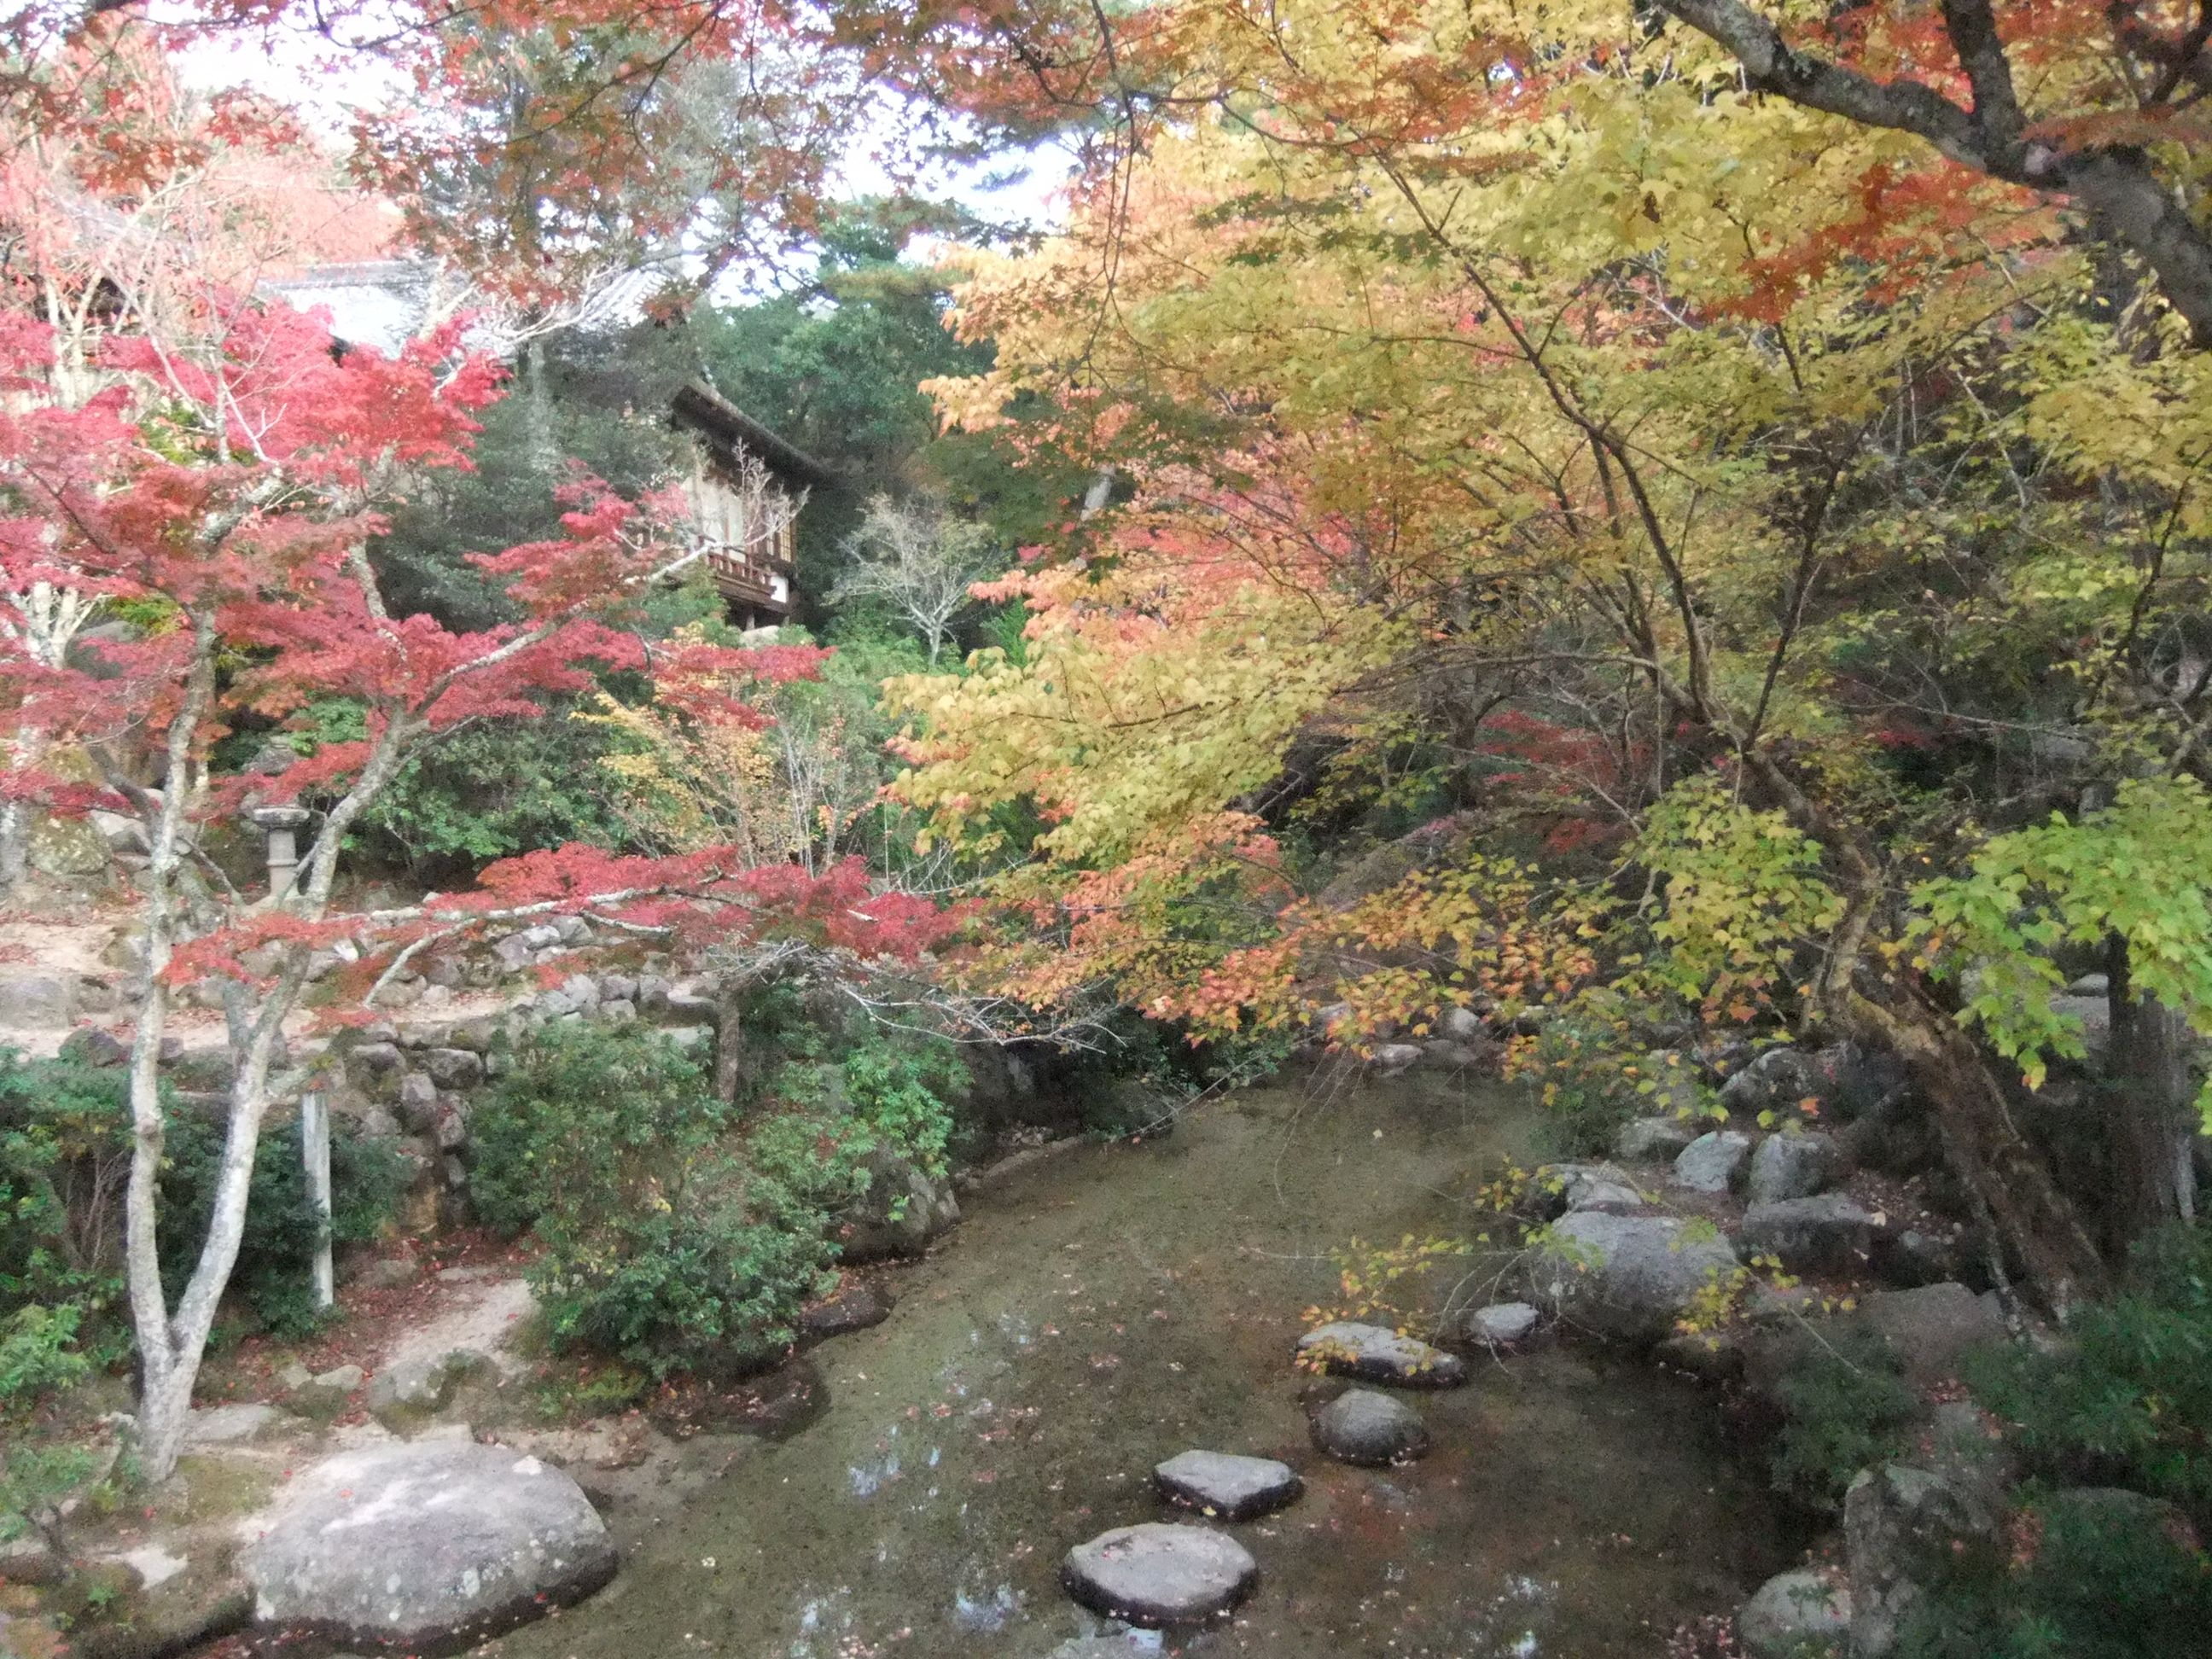 Colorful trees in autumn in Japan.